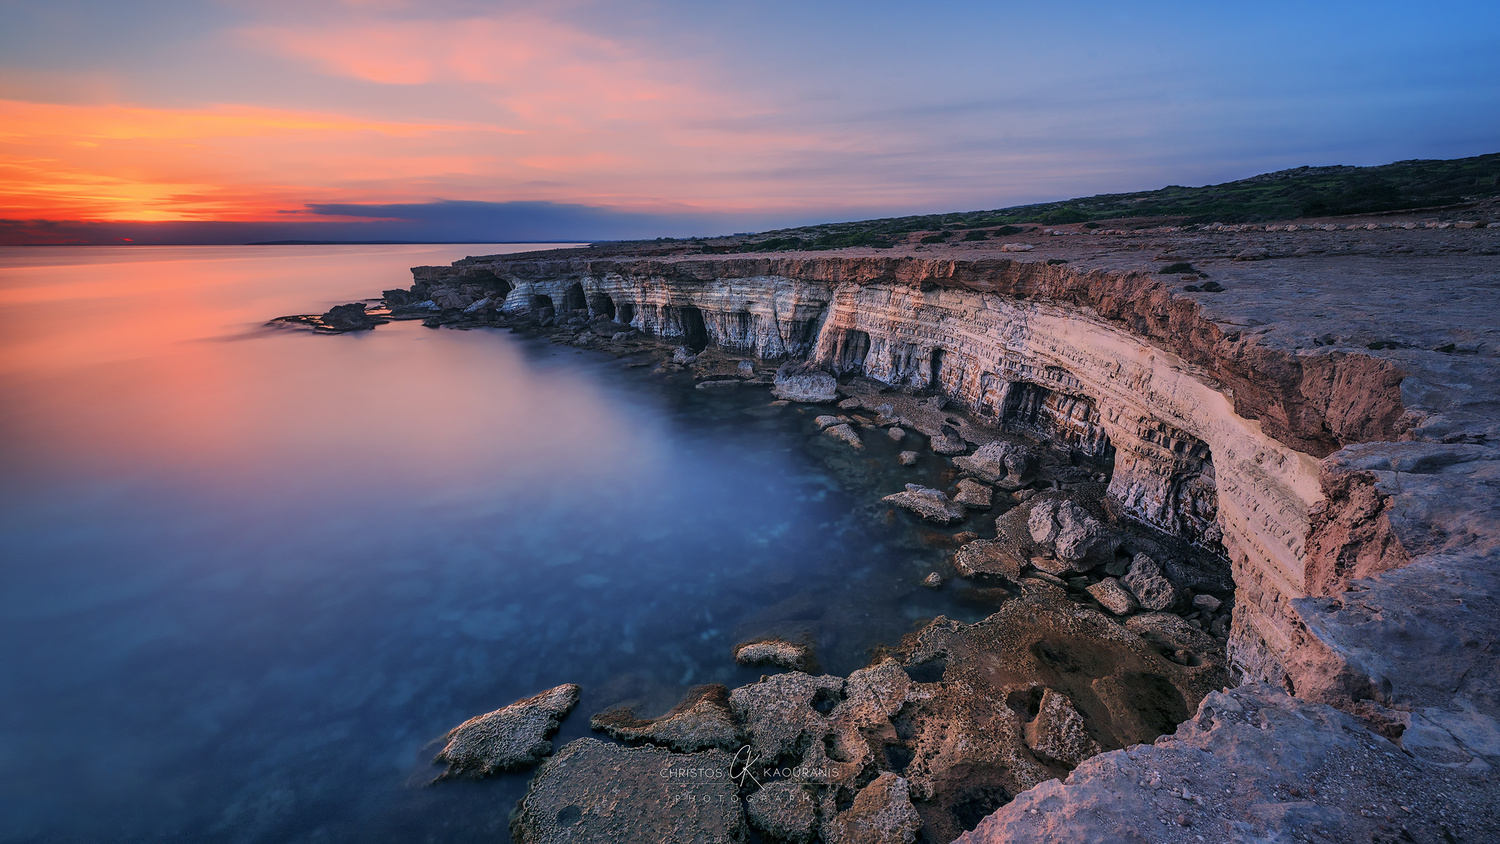 Calm and colorful Seacaves at Cape Greco by Christos Kaouranis